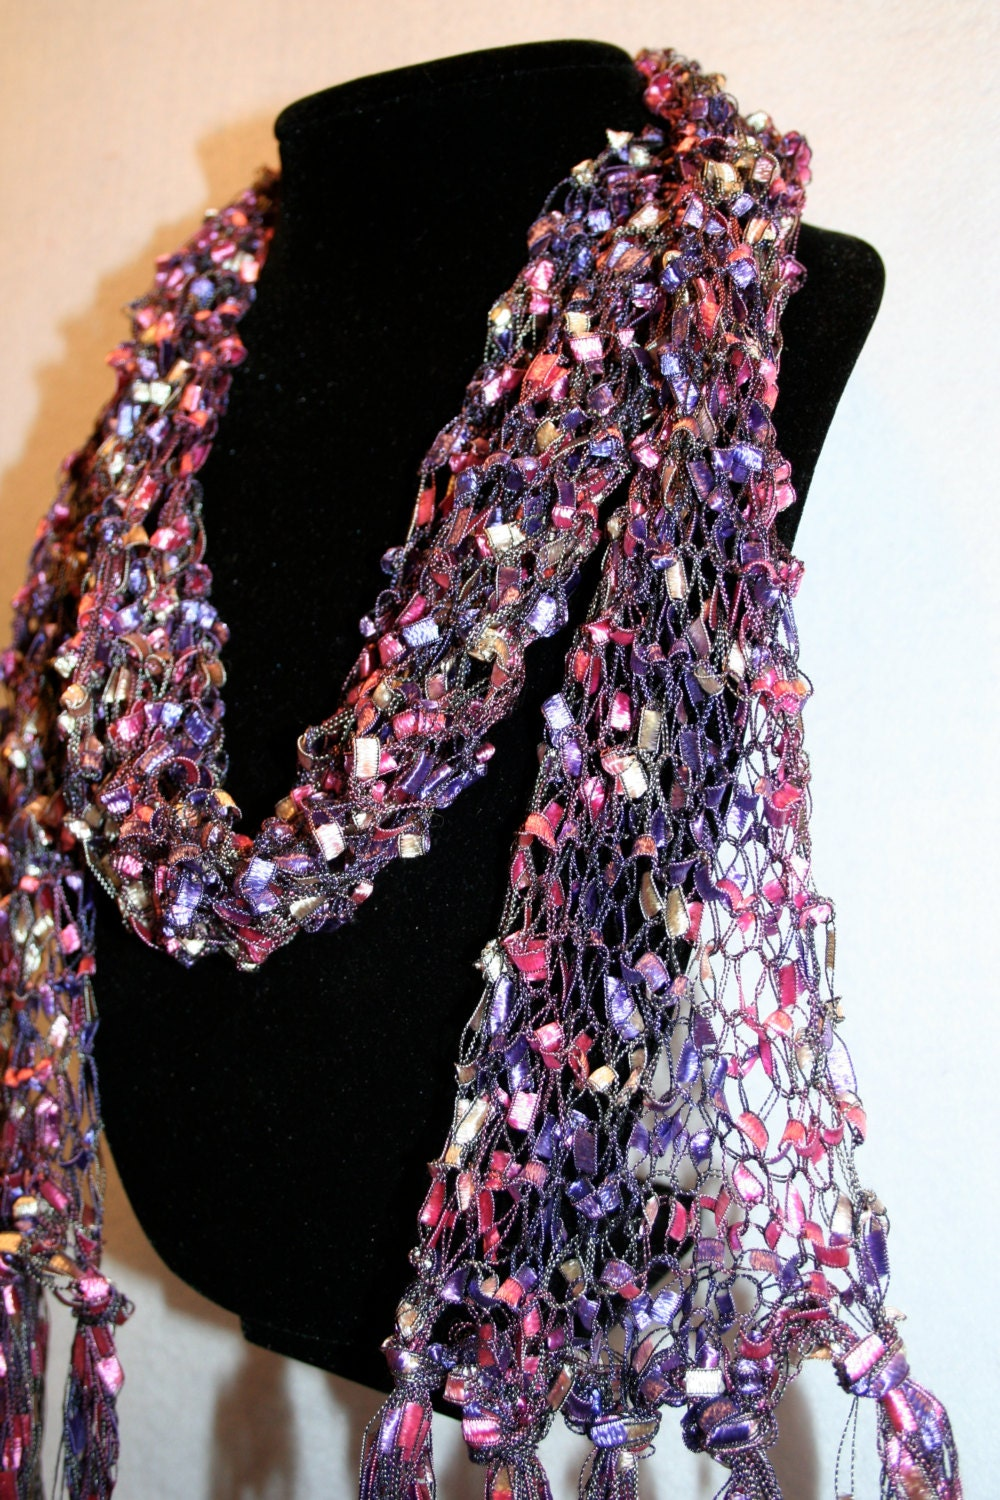 Items similar to Hand Knitted Pink and Purple Ladder Yarn Scarf on Etsy